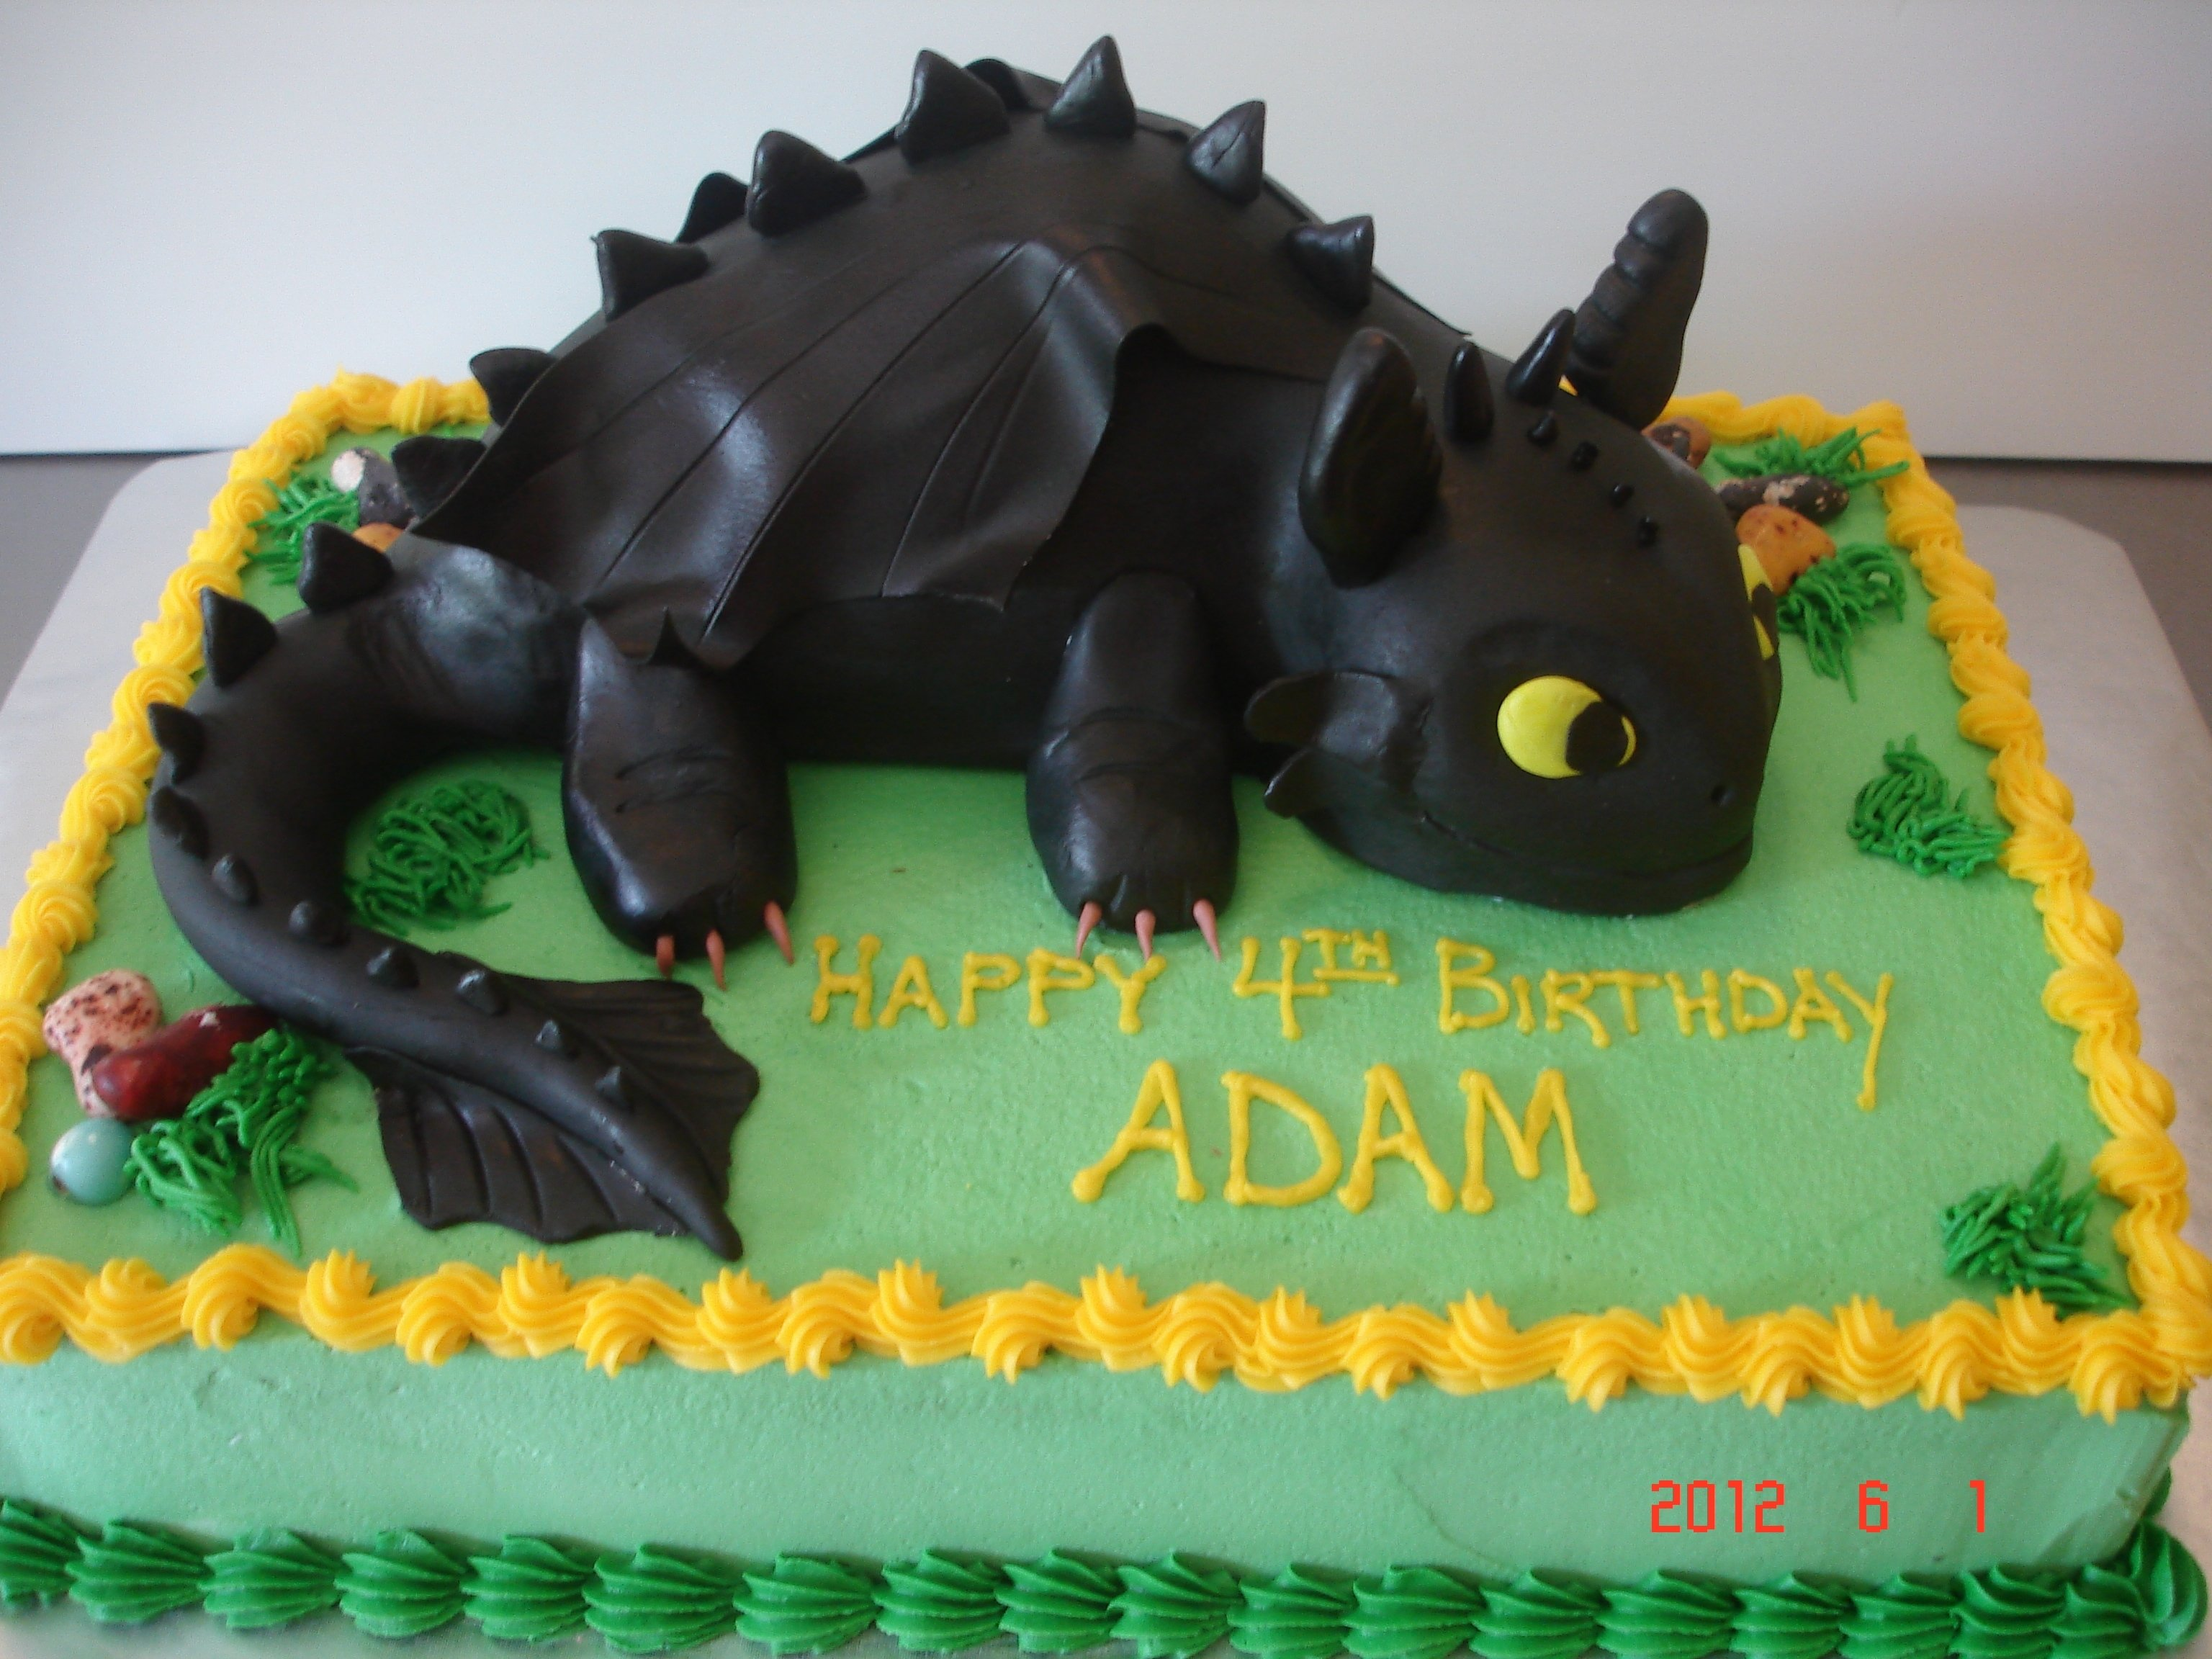 10 Most Recommended How To Train Your Dragon Cake Ideas how to train your dragon toothless st louis custom cakes 2020